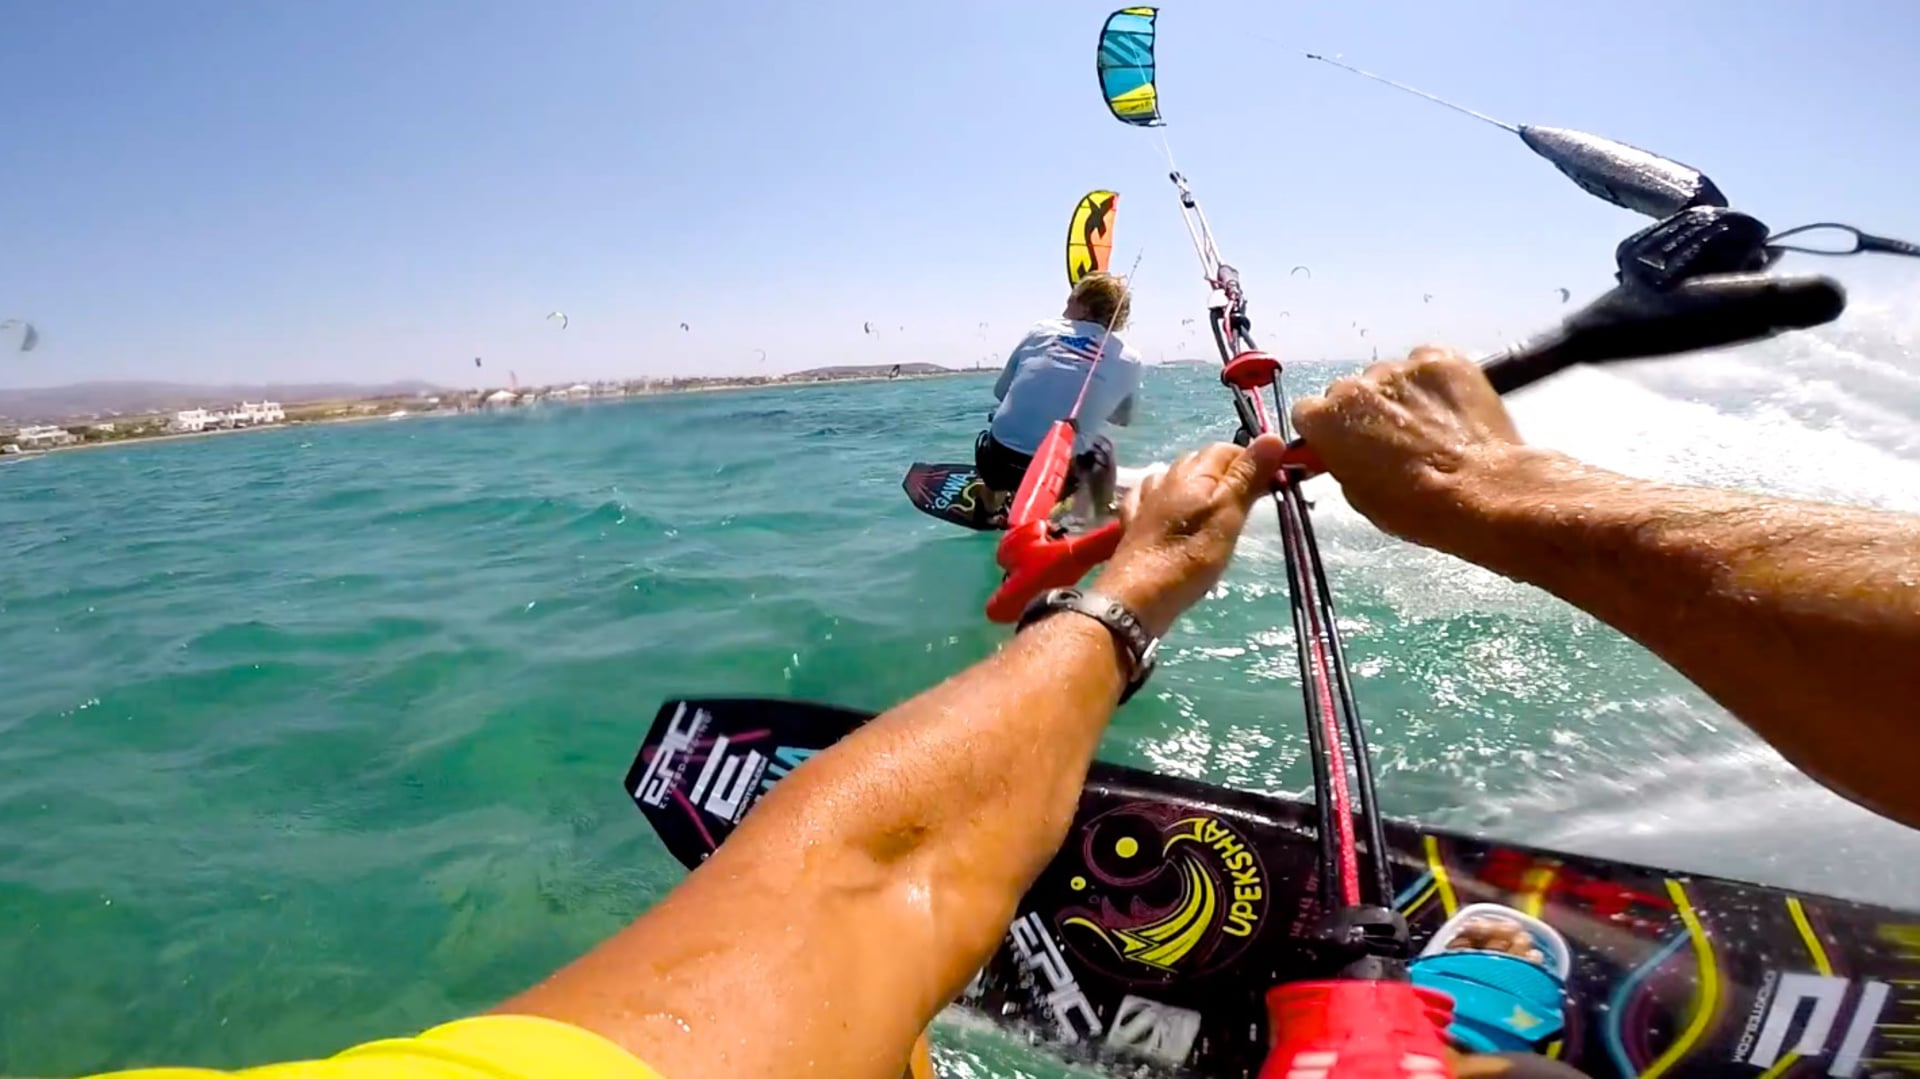 OLYMPIC BOOT CAMP kiteboarding training - with Epic Kites Kiteboarding